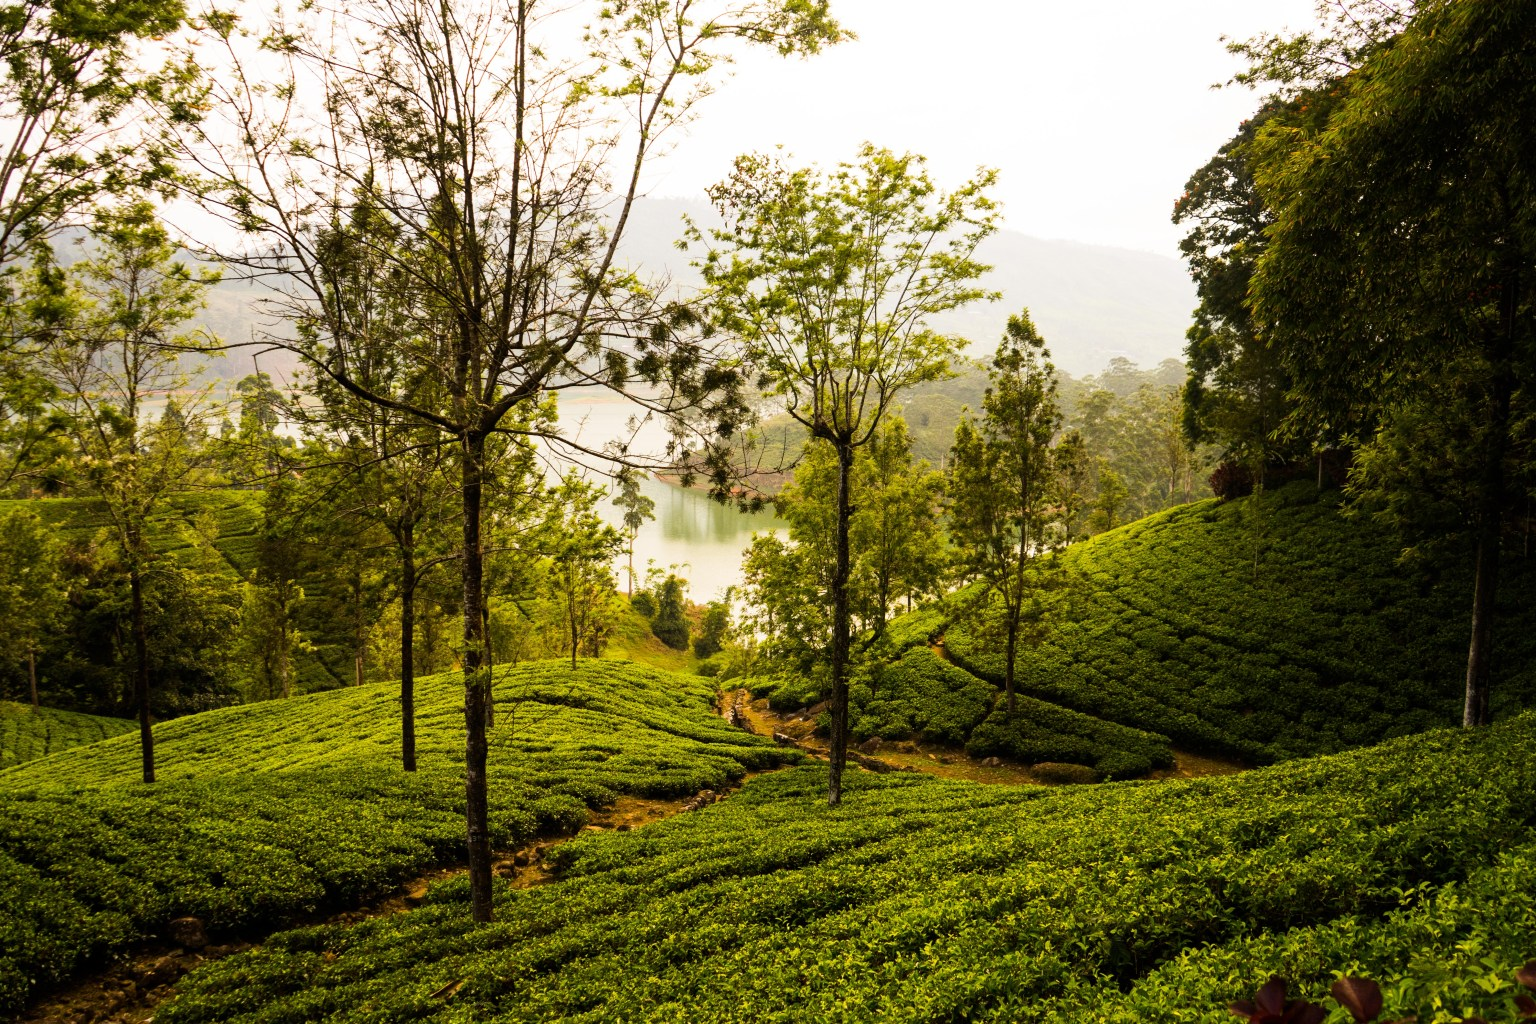 Green tea fields typical for Sri Lanka Nuwara Eliya Region